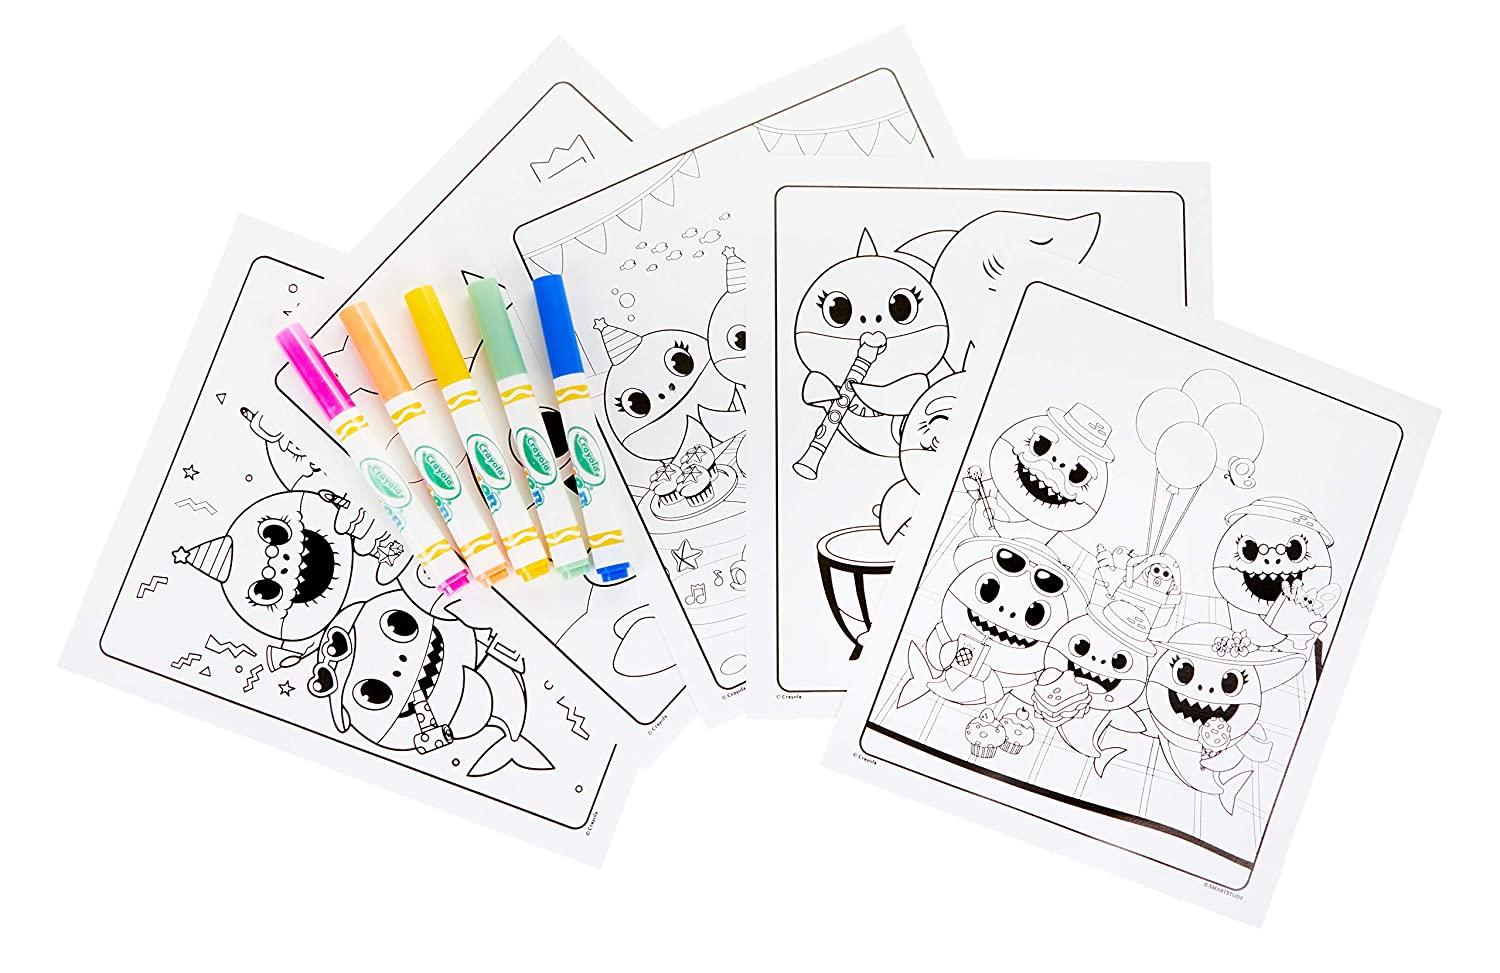 6 Crayola Color Wonder Baby Shark Coloring Pages Mess Free Coloring Gift for Kids 5 4 Age 3